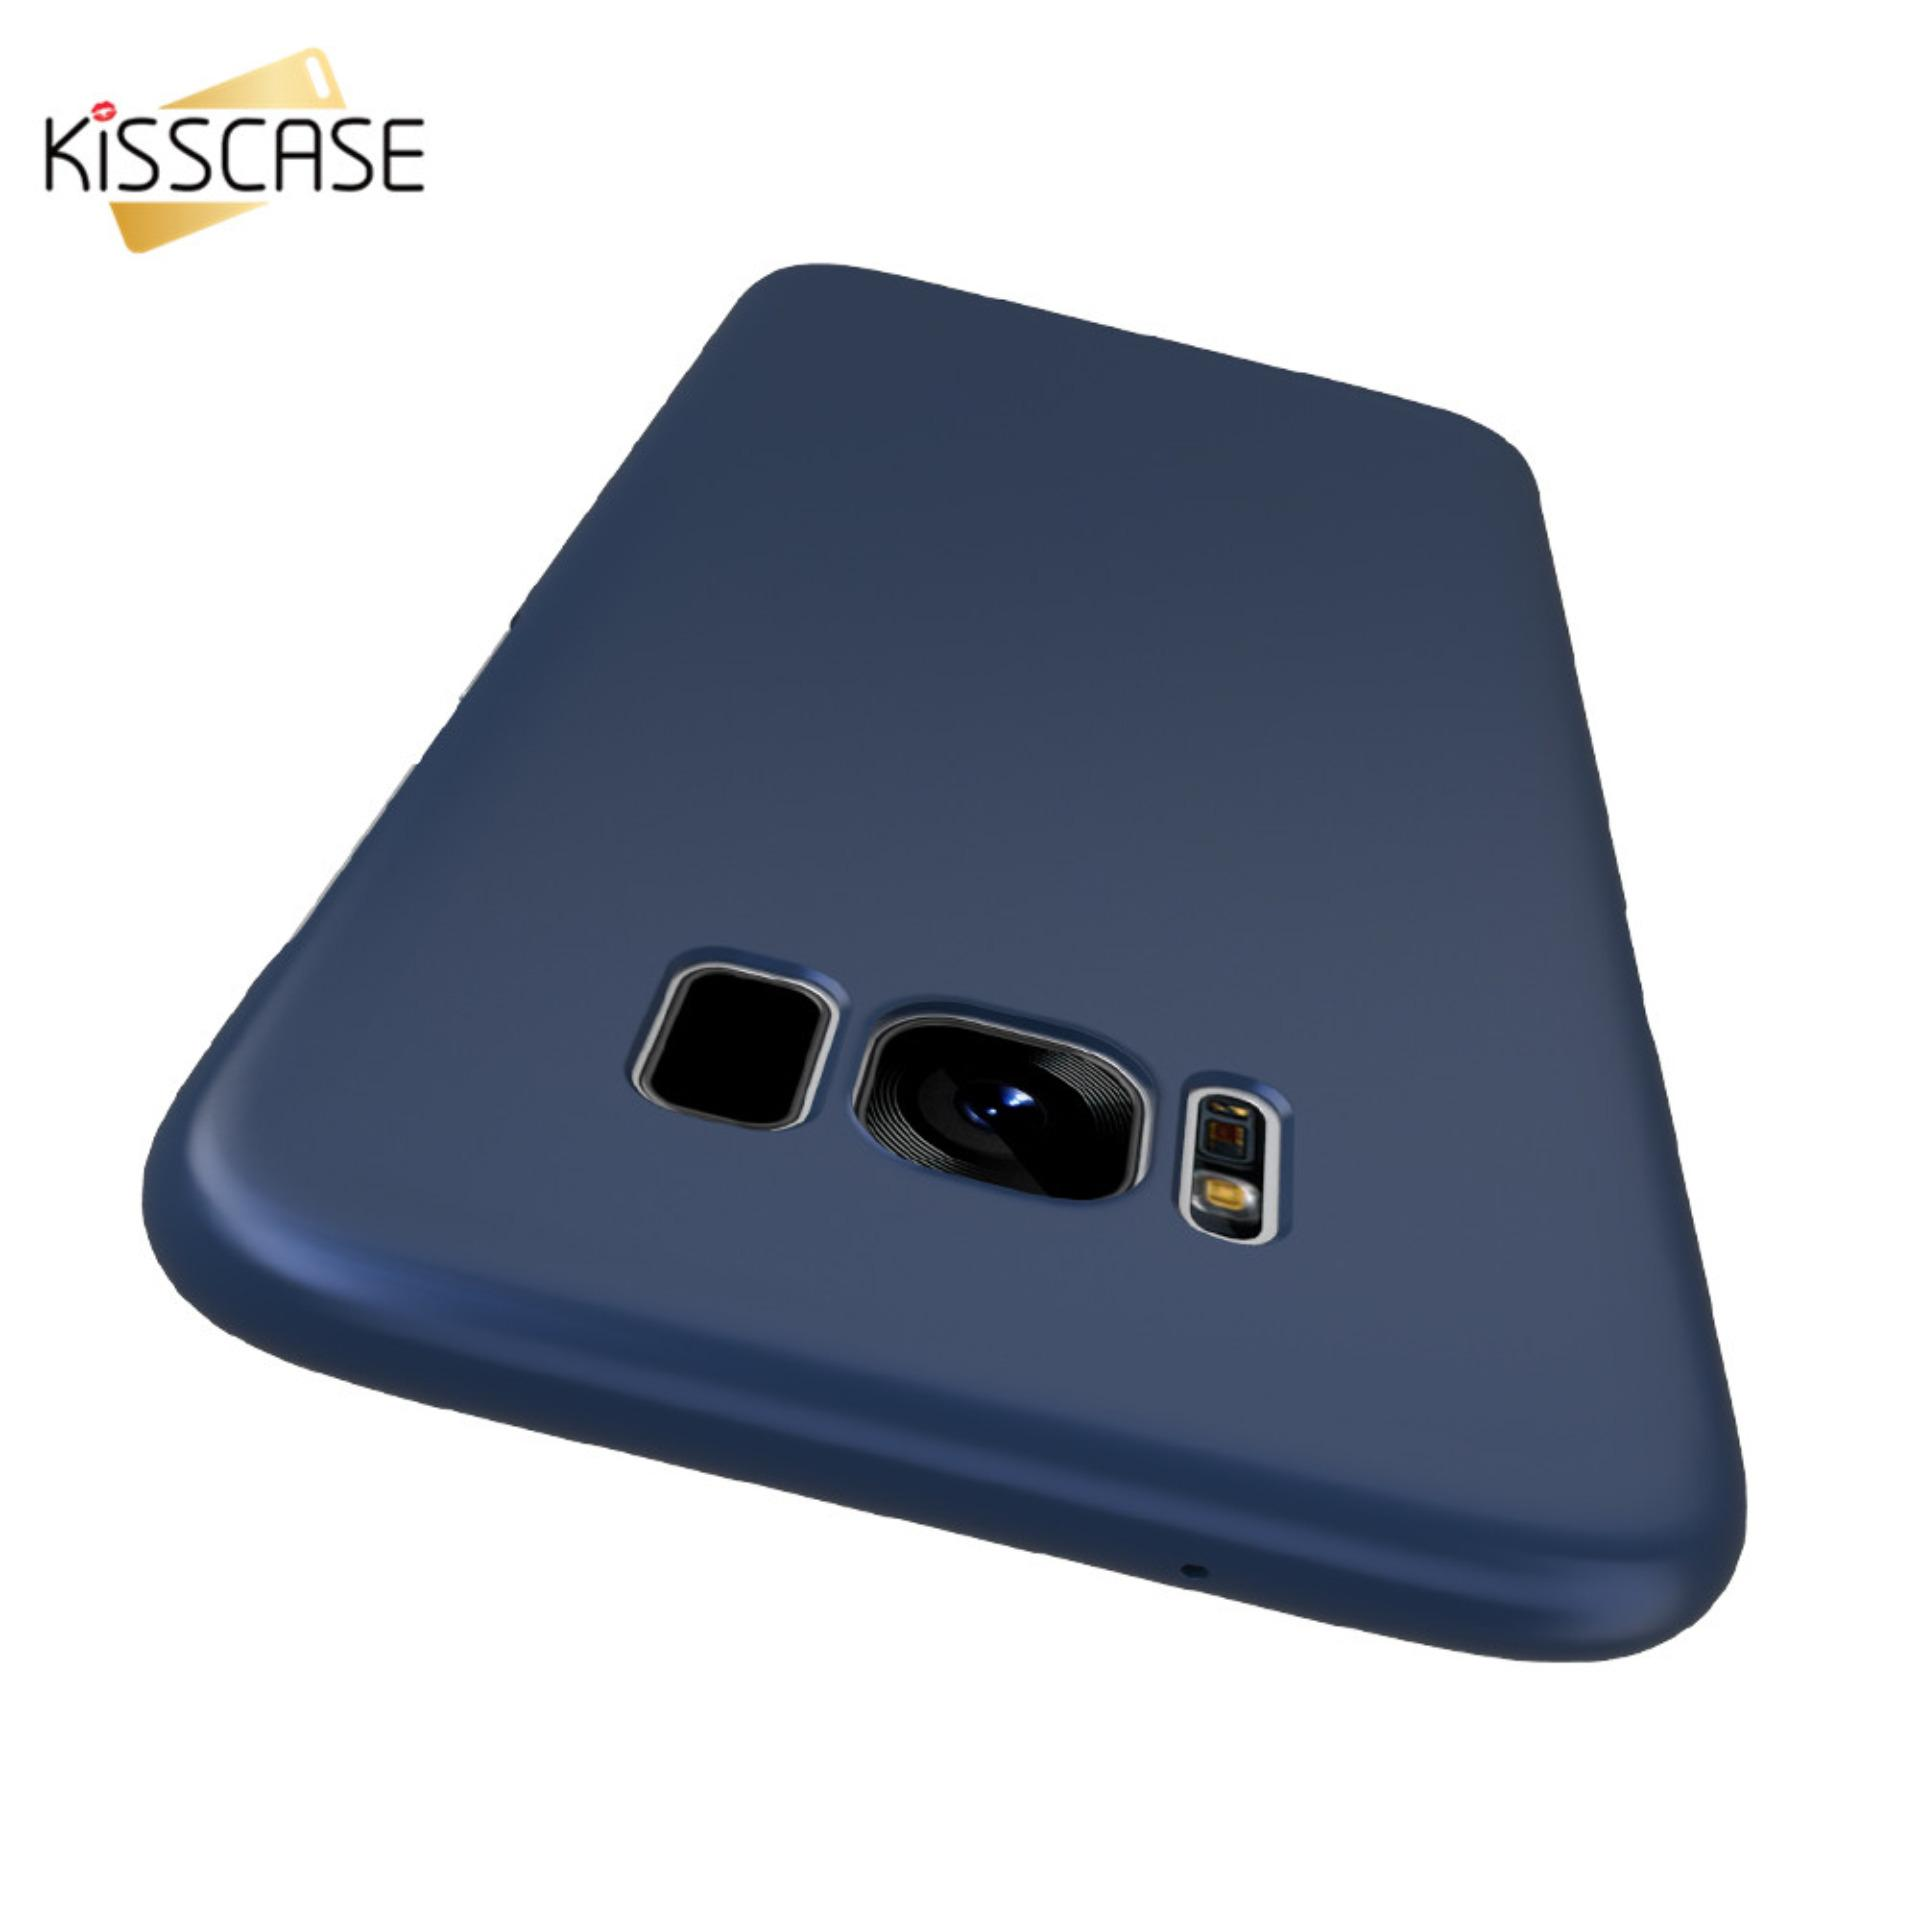 Case Samsung S8 Full Body 360 Protection Depan Belakang Free Gkk Galaxy Plus G950fd S7 Edge Dan Flat Original Anti Shock 3d Navy